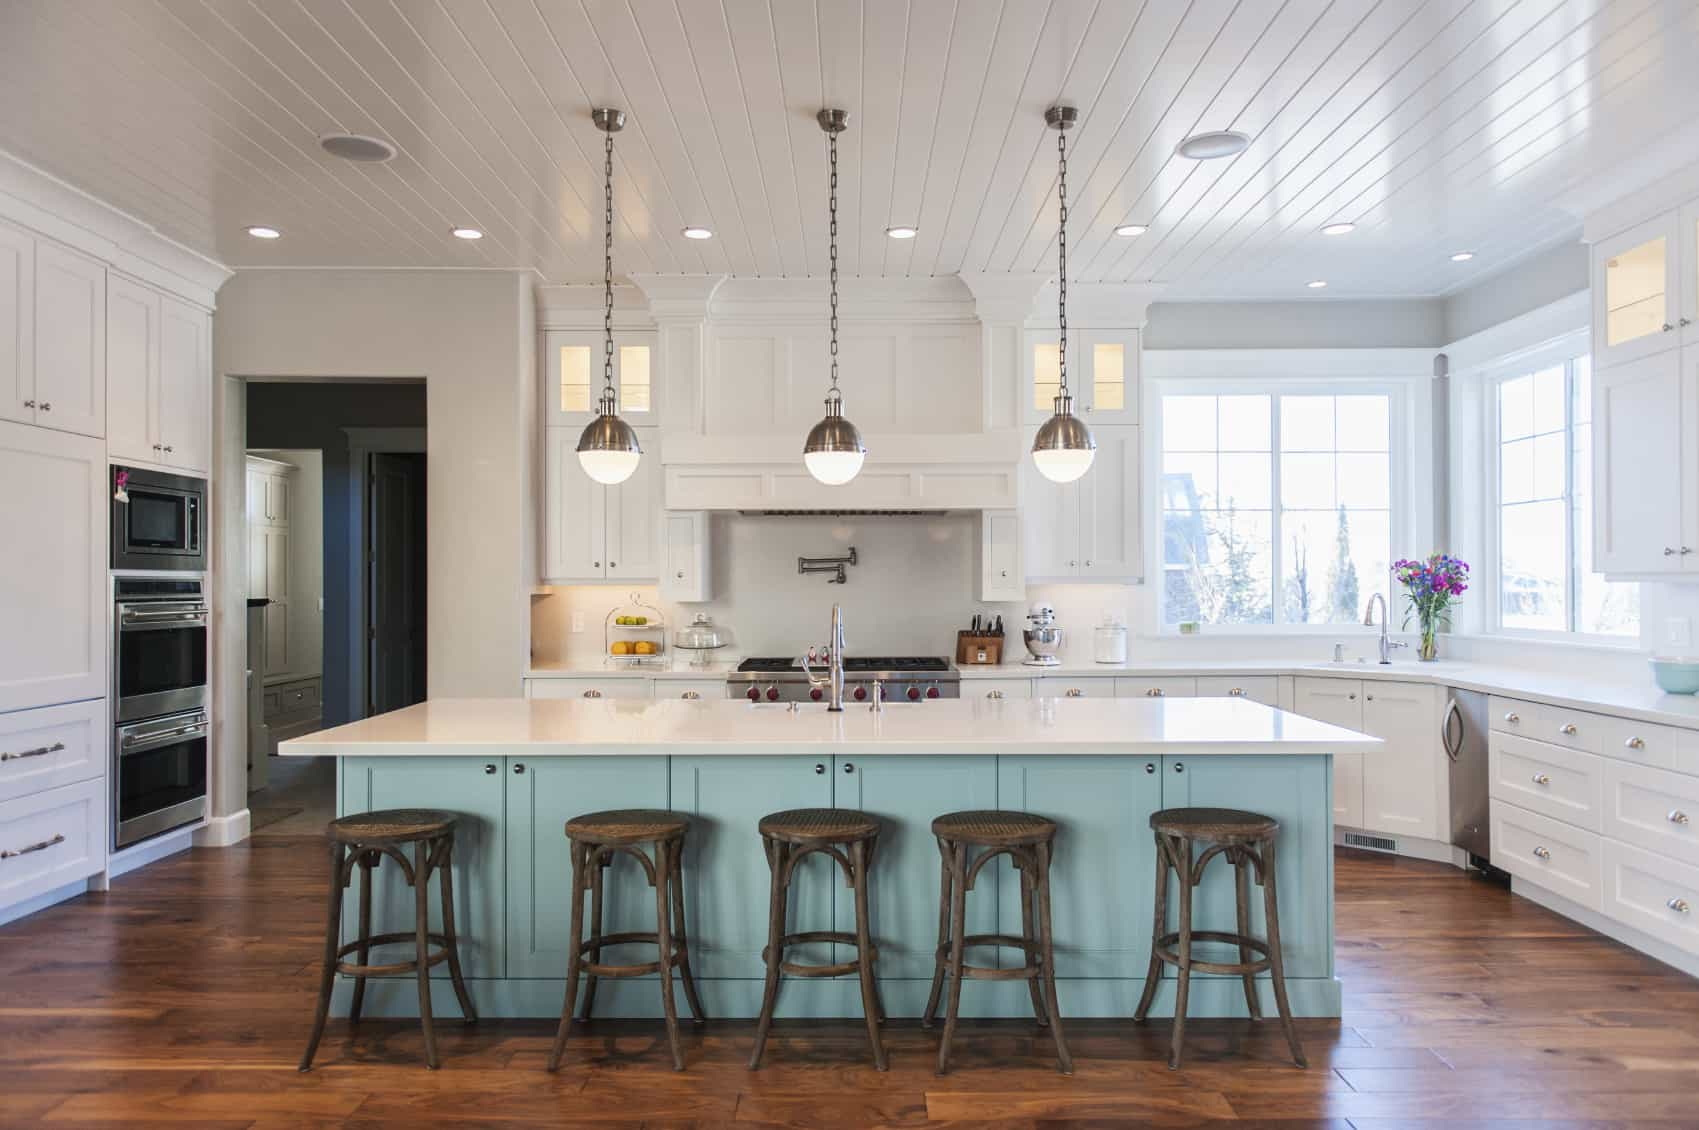 59 luxury kitchen designs that will captivate you blue cabinets kitchen Bright contemporary kitchen featuring white and wooden color The sky blue island is quite large